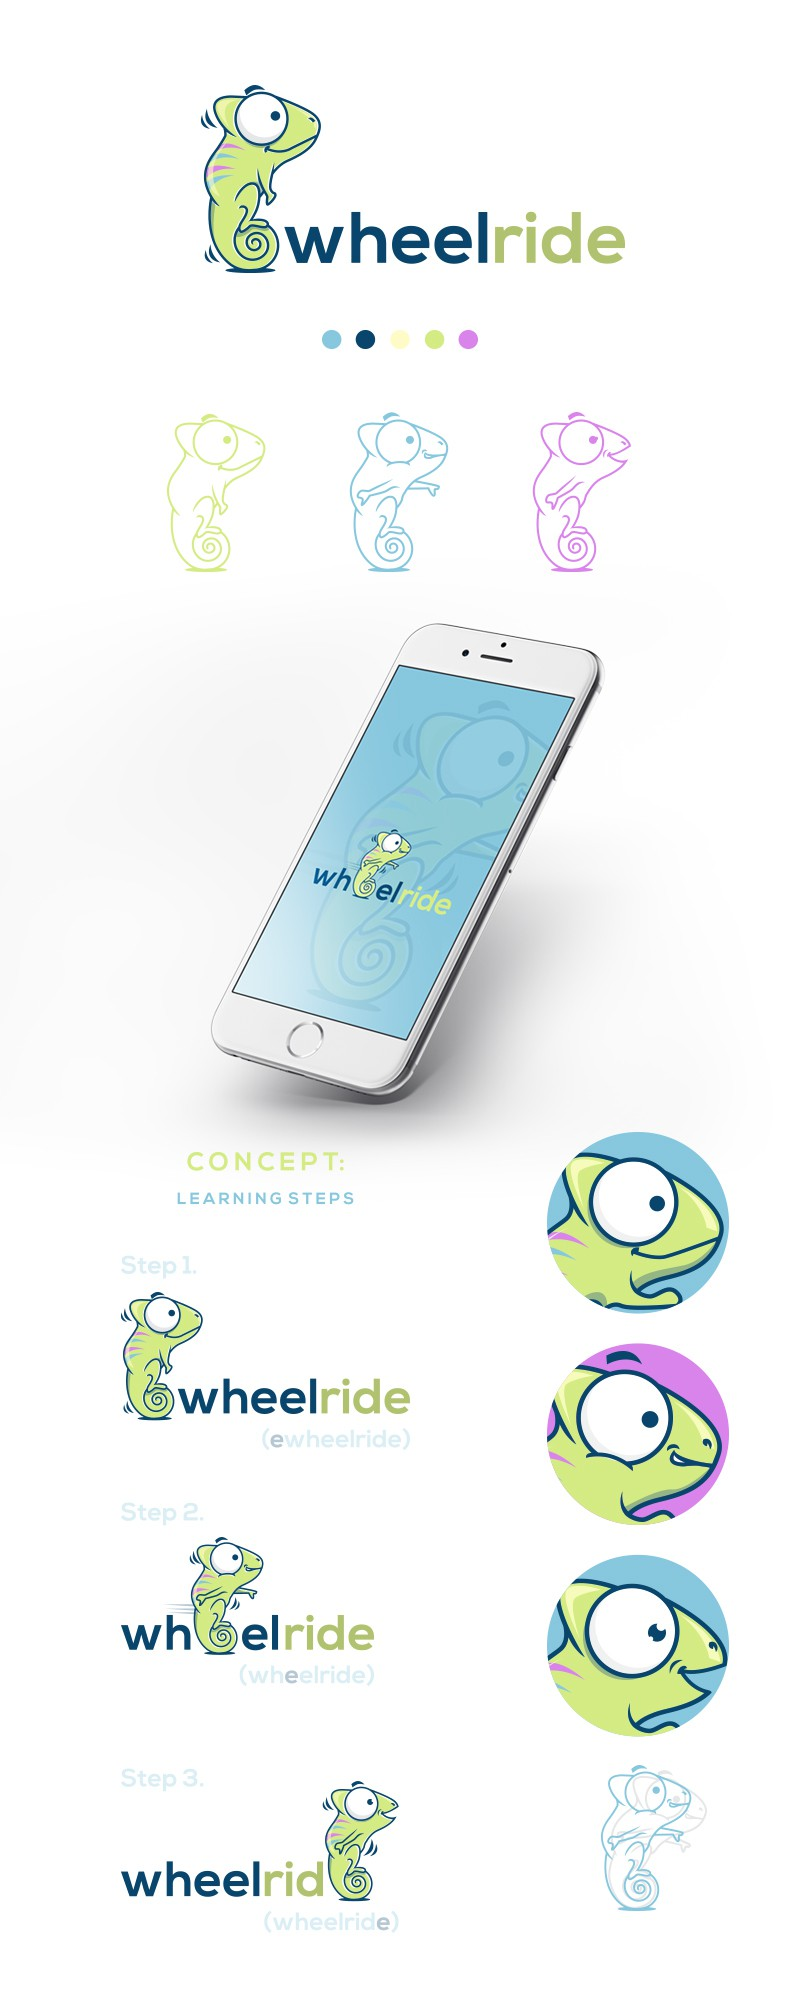 Create a fresh, cool and eye-catching logo for our e-wheel company wheelride